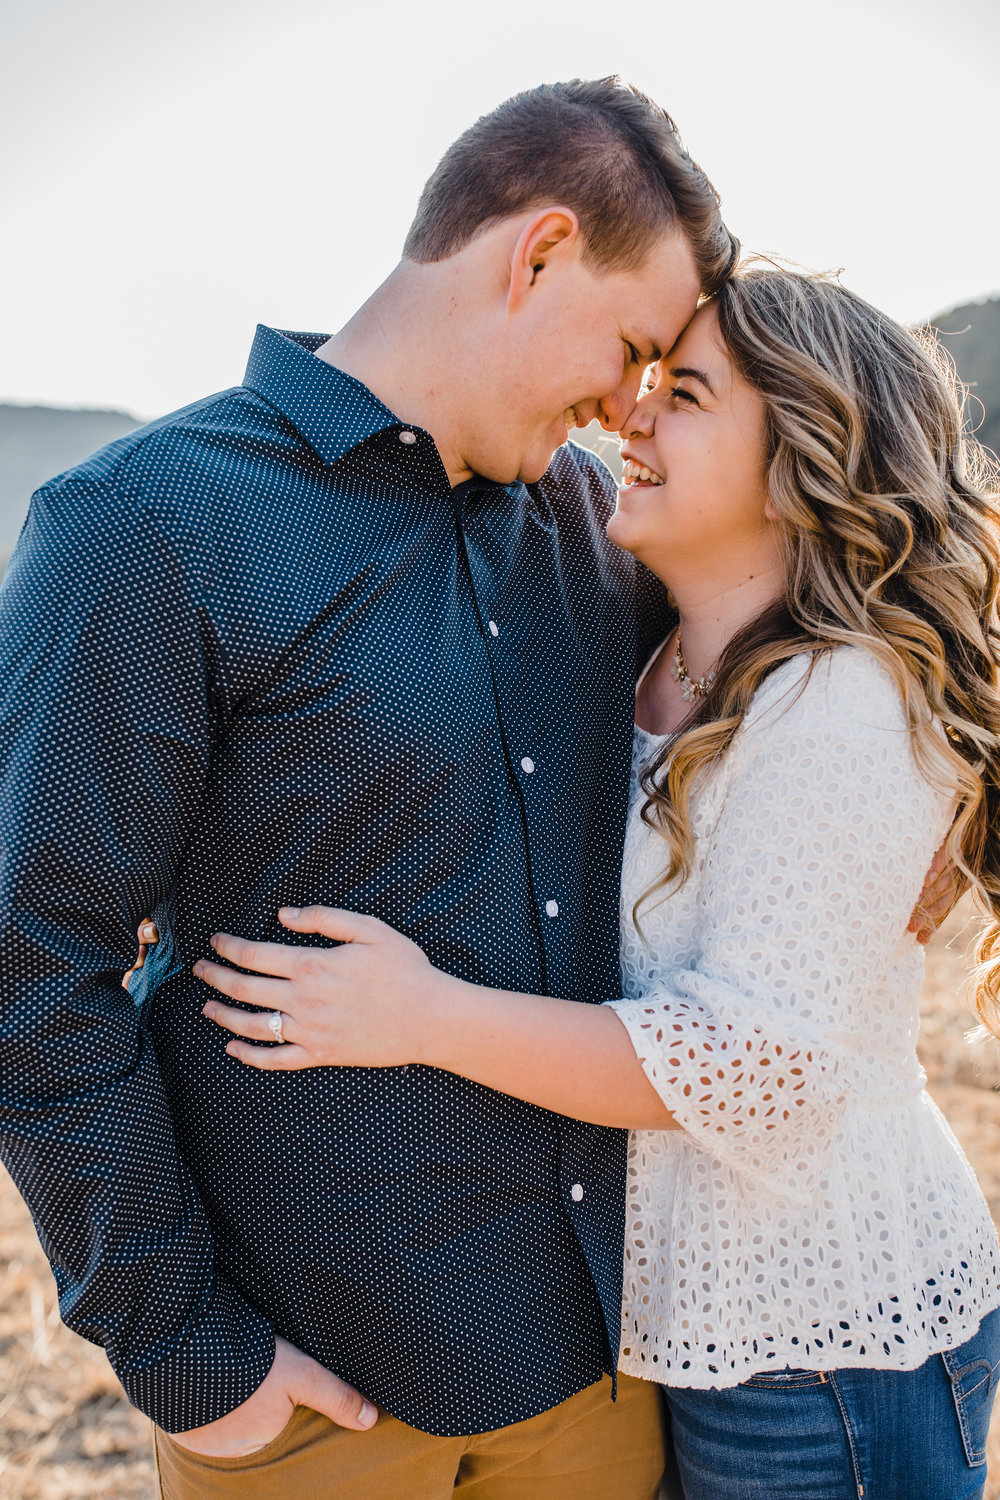 logan utah engagement photographer hugging laughing mountains playful